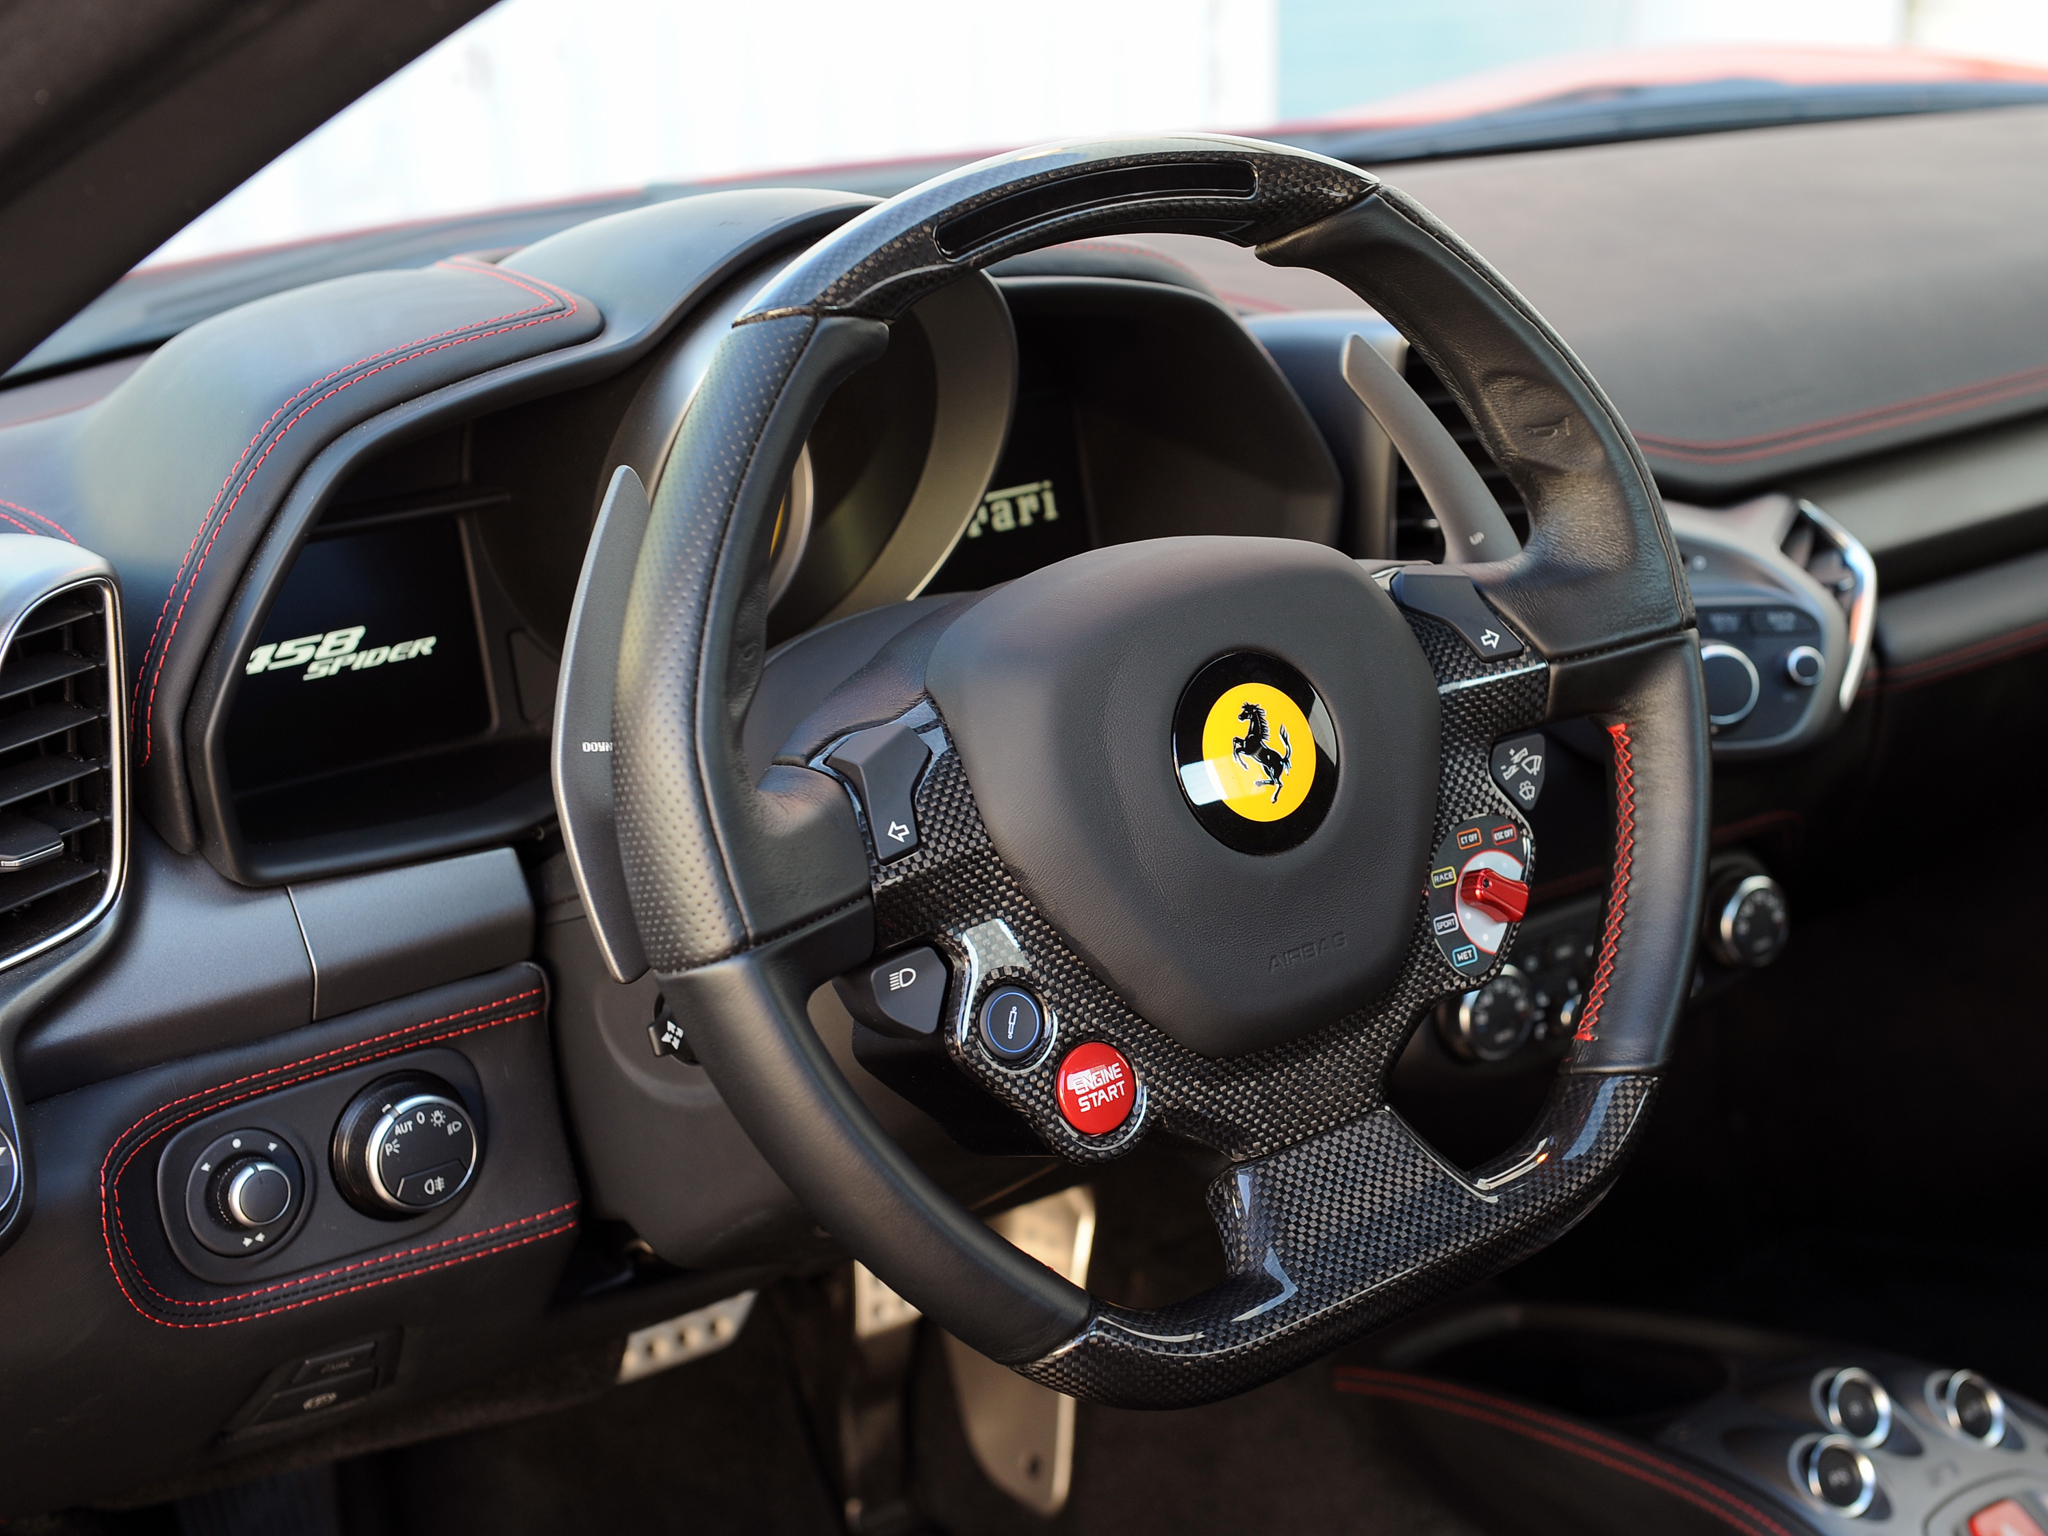 2013 Hennessey Ferrari 458 Spider Hpe700 Twin Turbo Supercar Interior G Wallpaper 2048x1536 141531 Wallpaperup